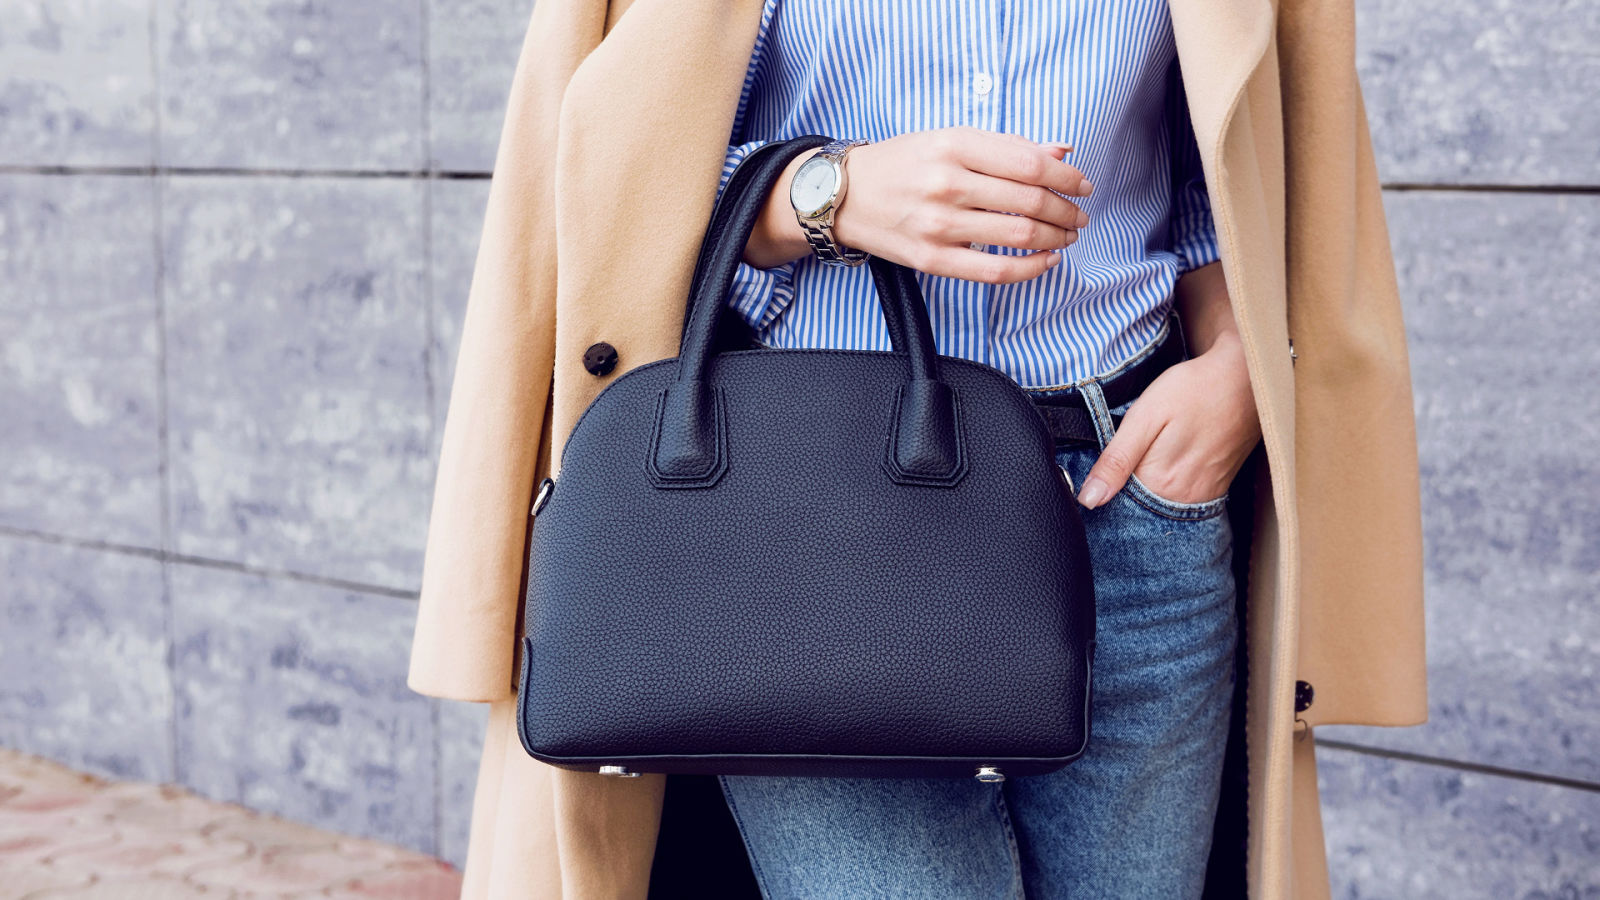 [Shops] - Person With Purse